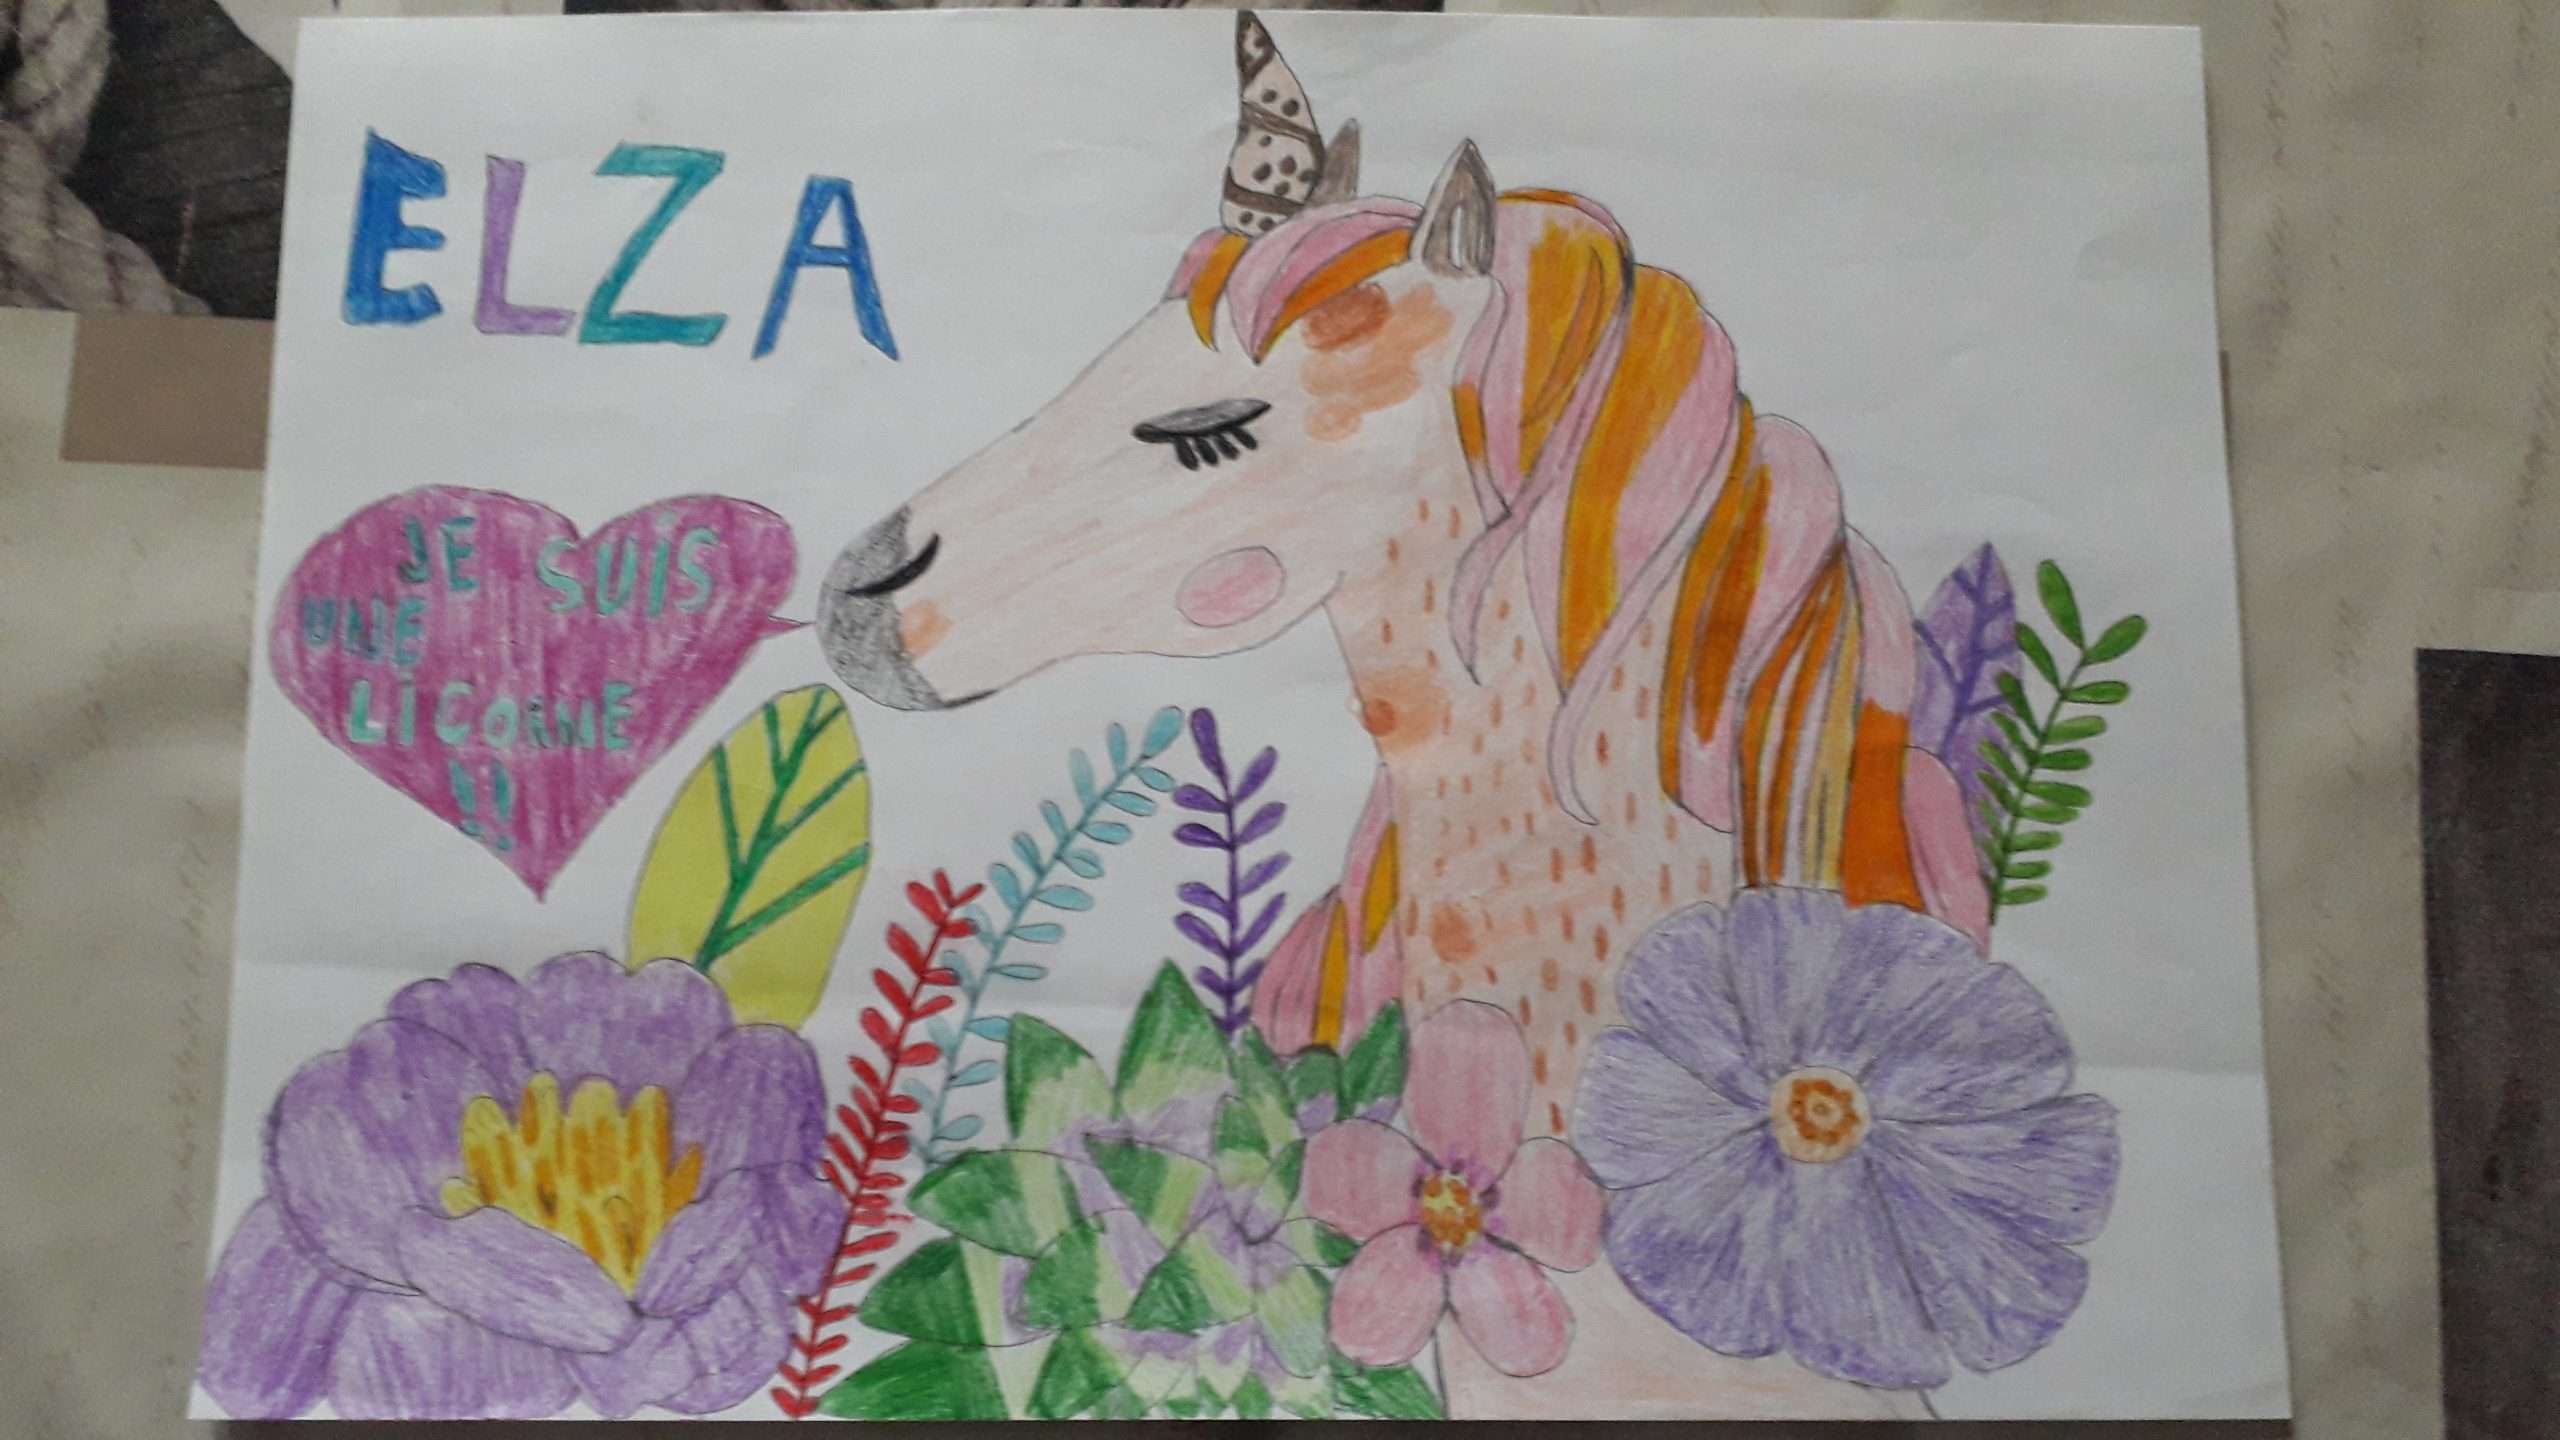 Competition Entry for Elza